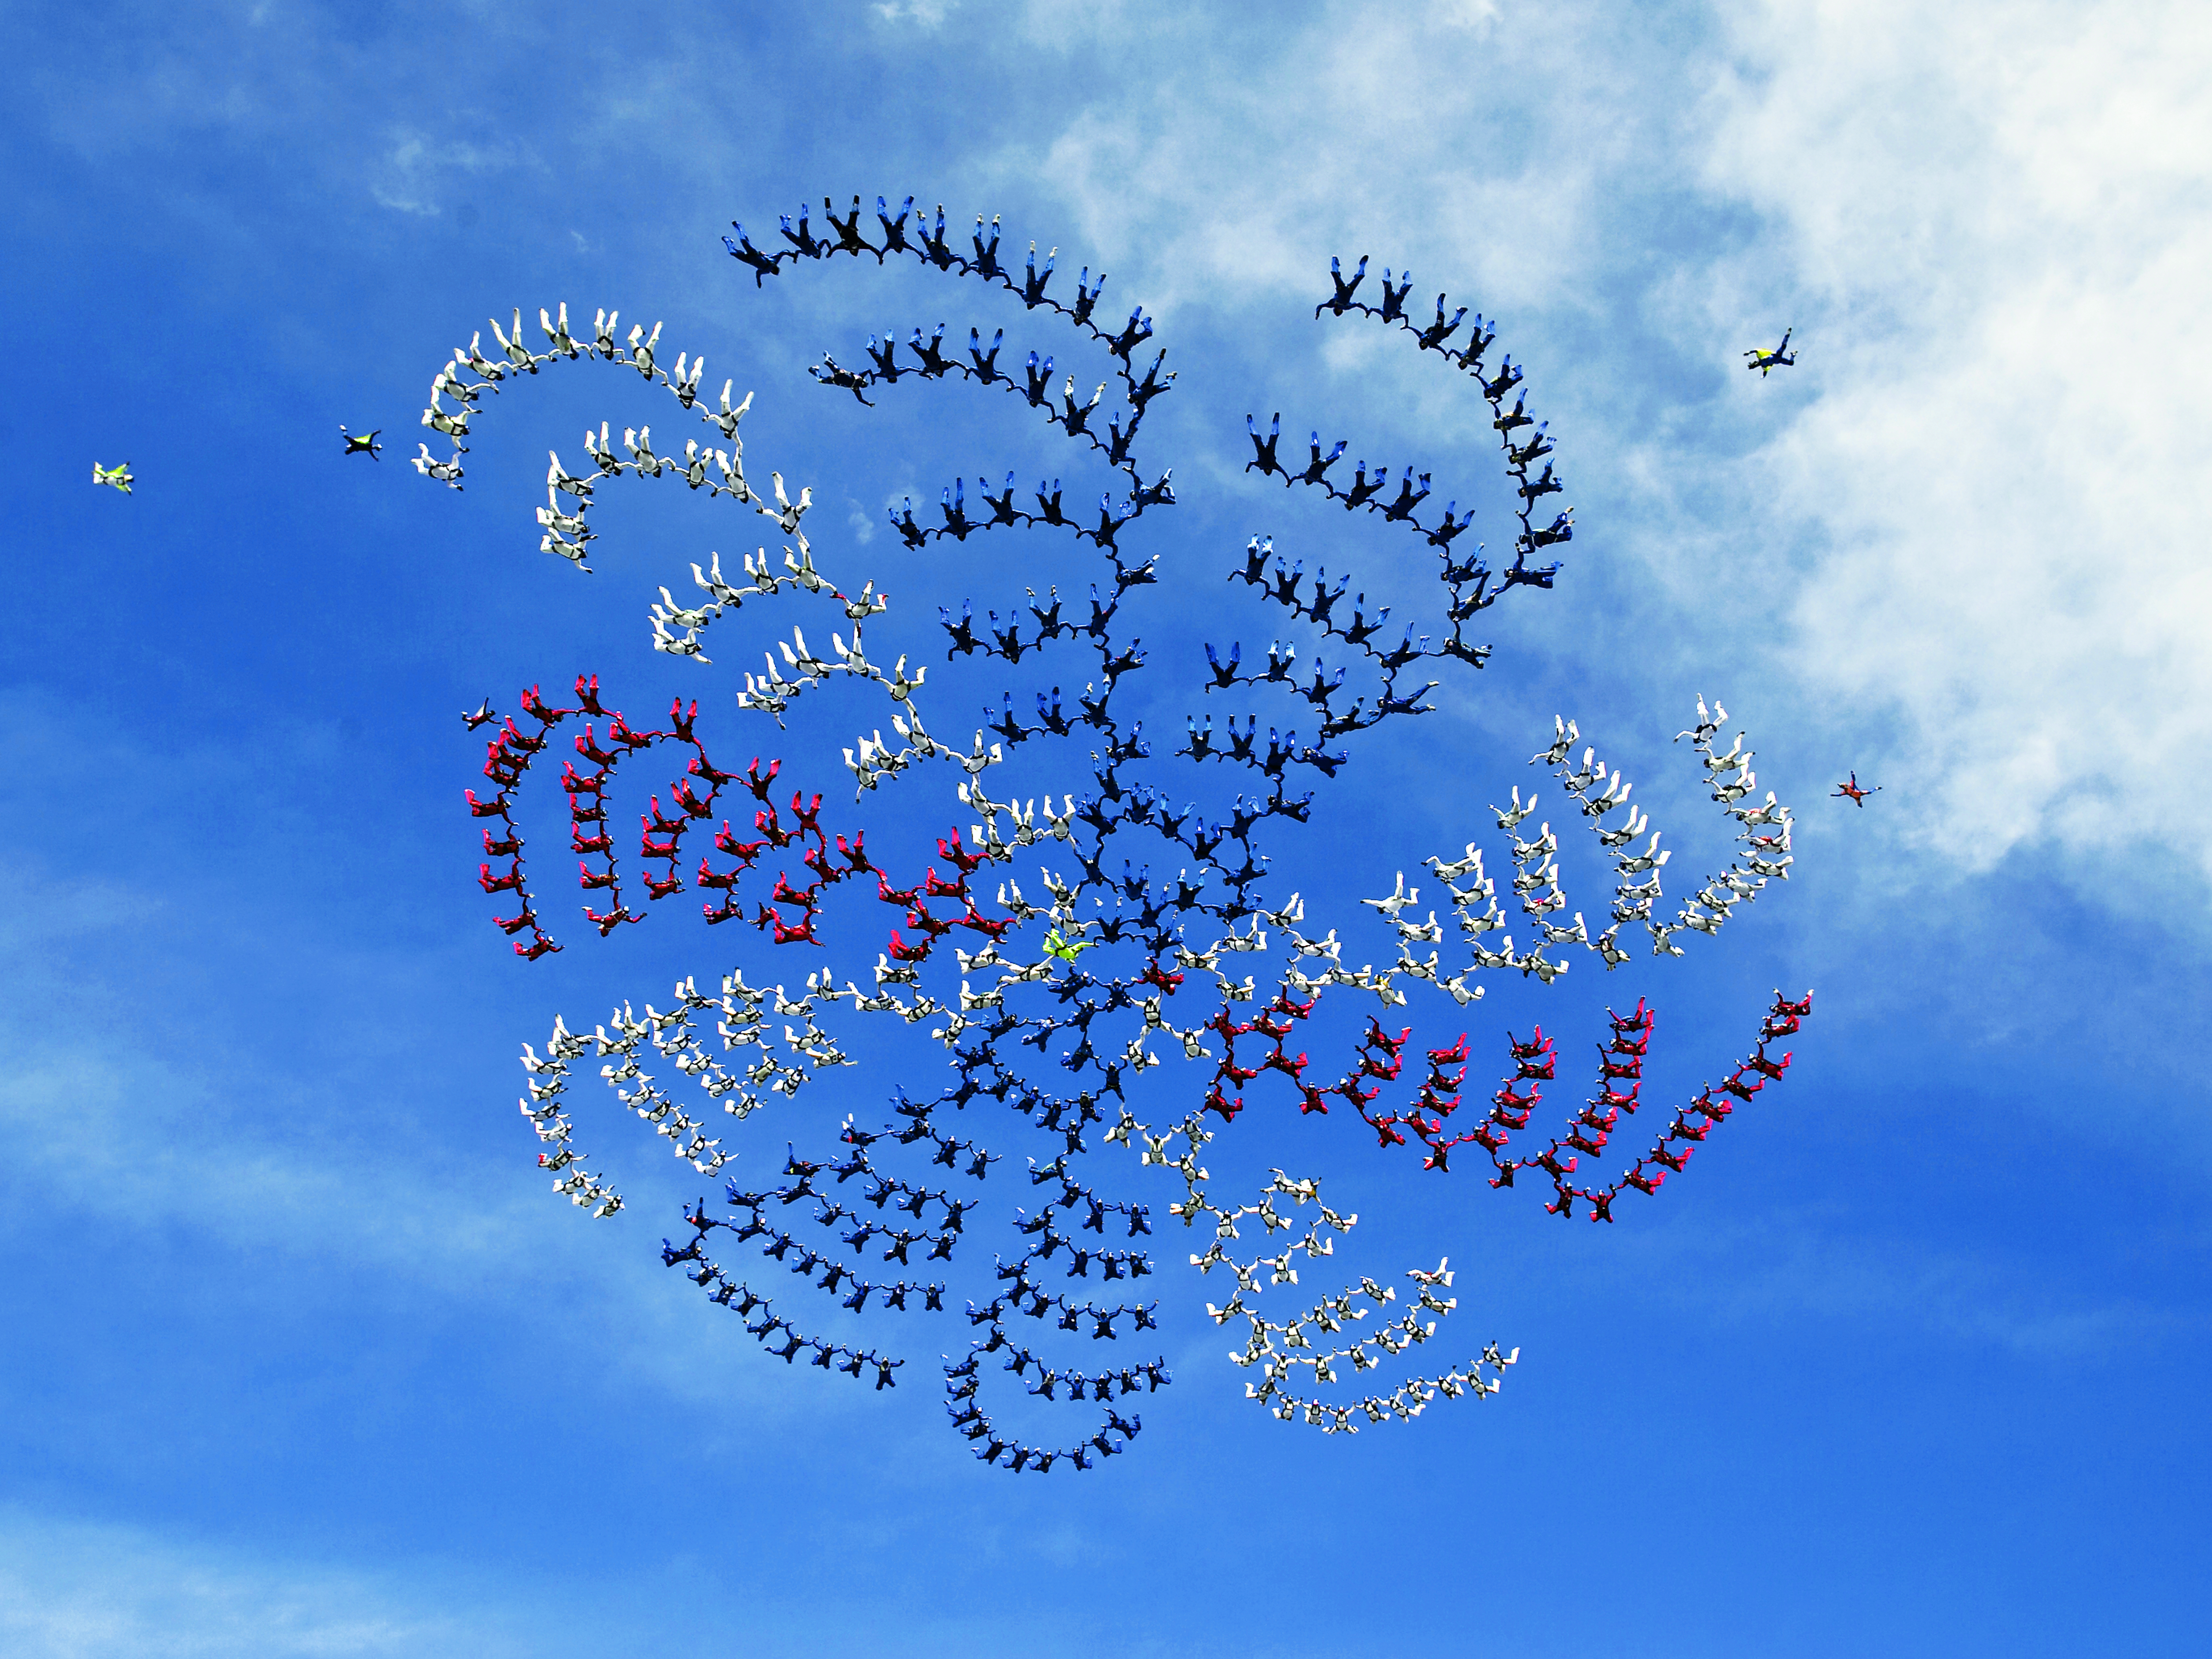 The Current FAI World Record For Largest Free Fall Formation Is A 400 Way Set On February 82006 In Udon ThaniThailand By Team